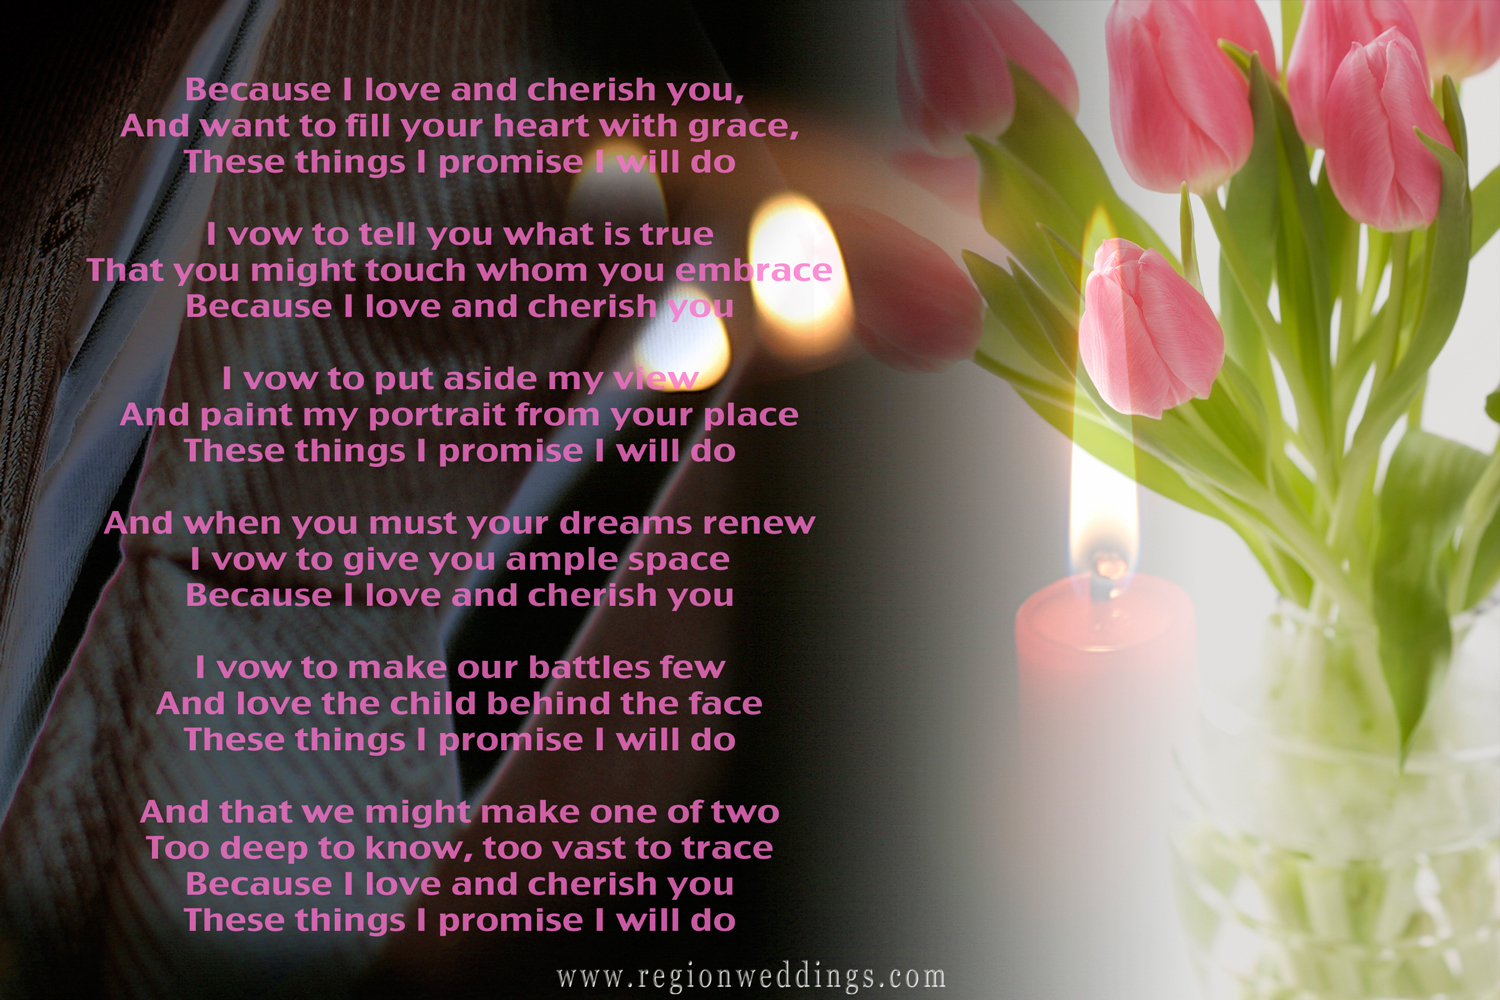 Wedding vows intertwined with wedding photos of candles, flowers and the groom's tuxedo jacket.